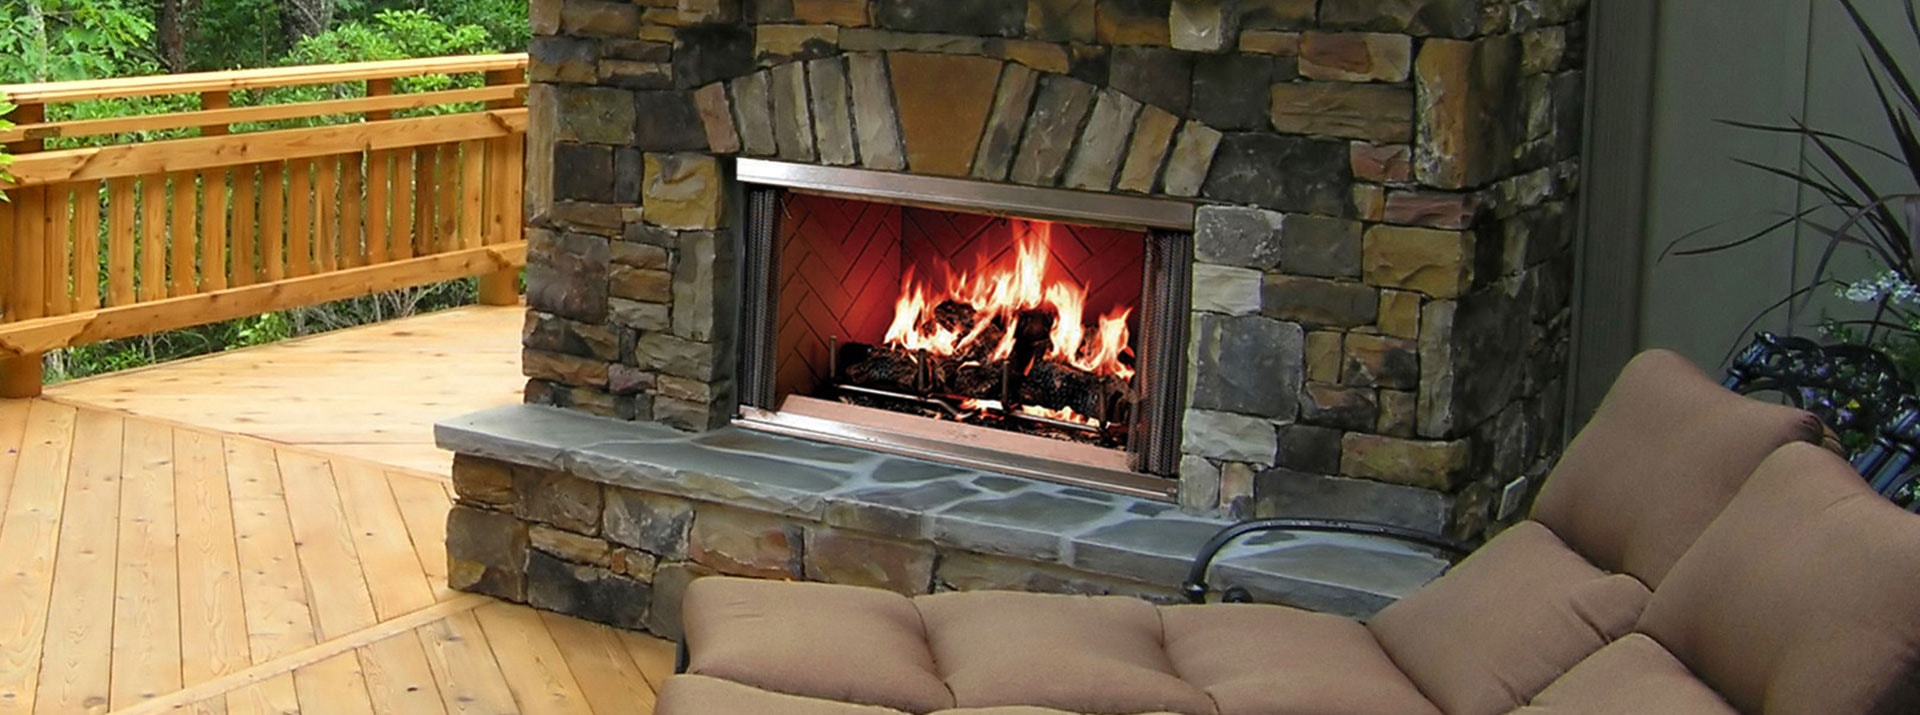 regency outdoor in fireplace fireplaces unlimited vancouver canada inserts wood burnaby